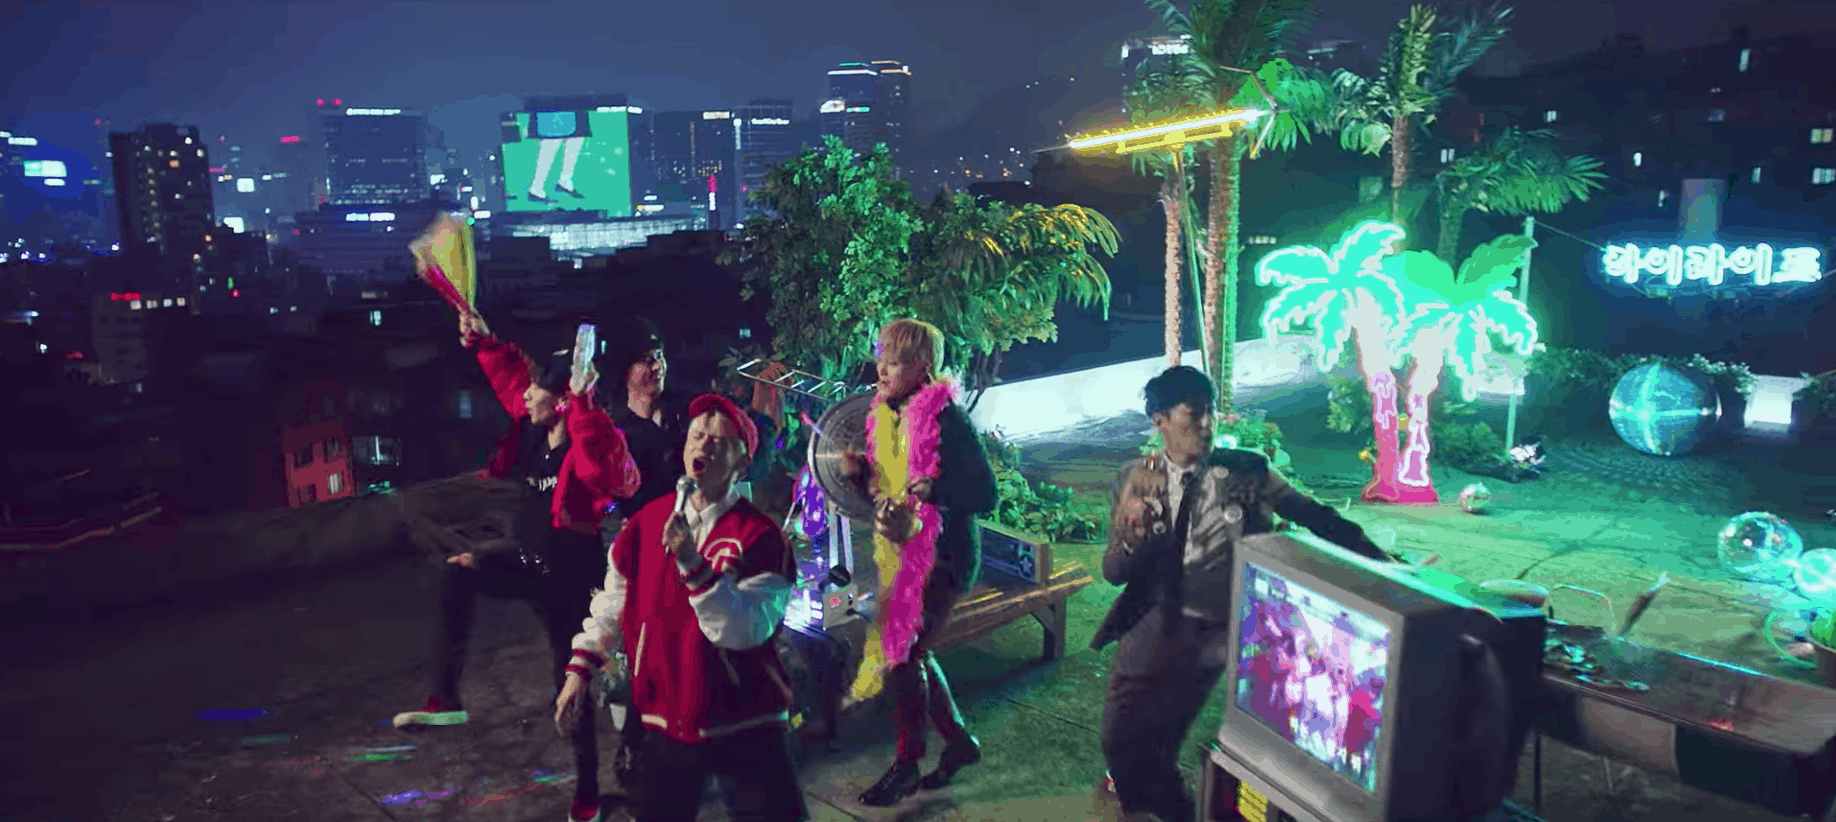 Highlight can be better music video fashion: The boys performing on a rooftop with palm trees